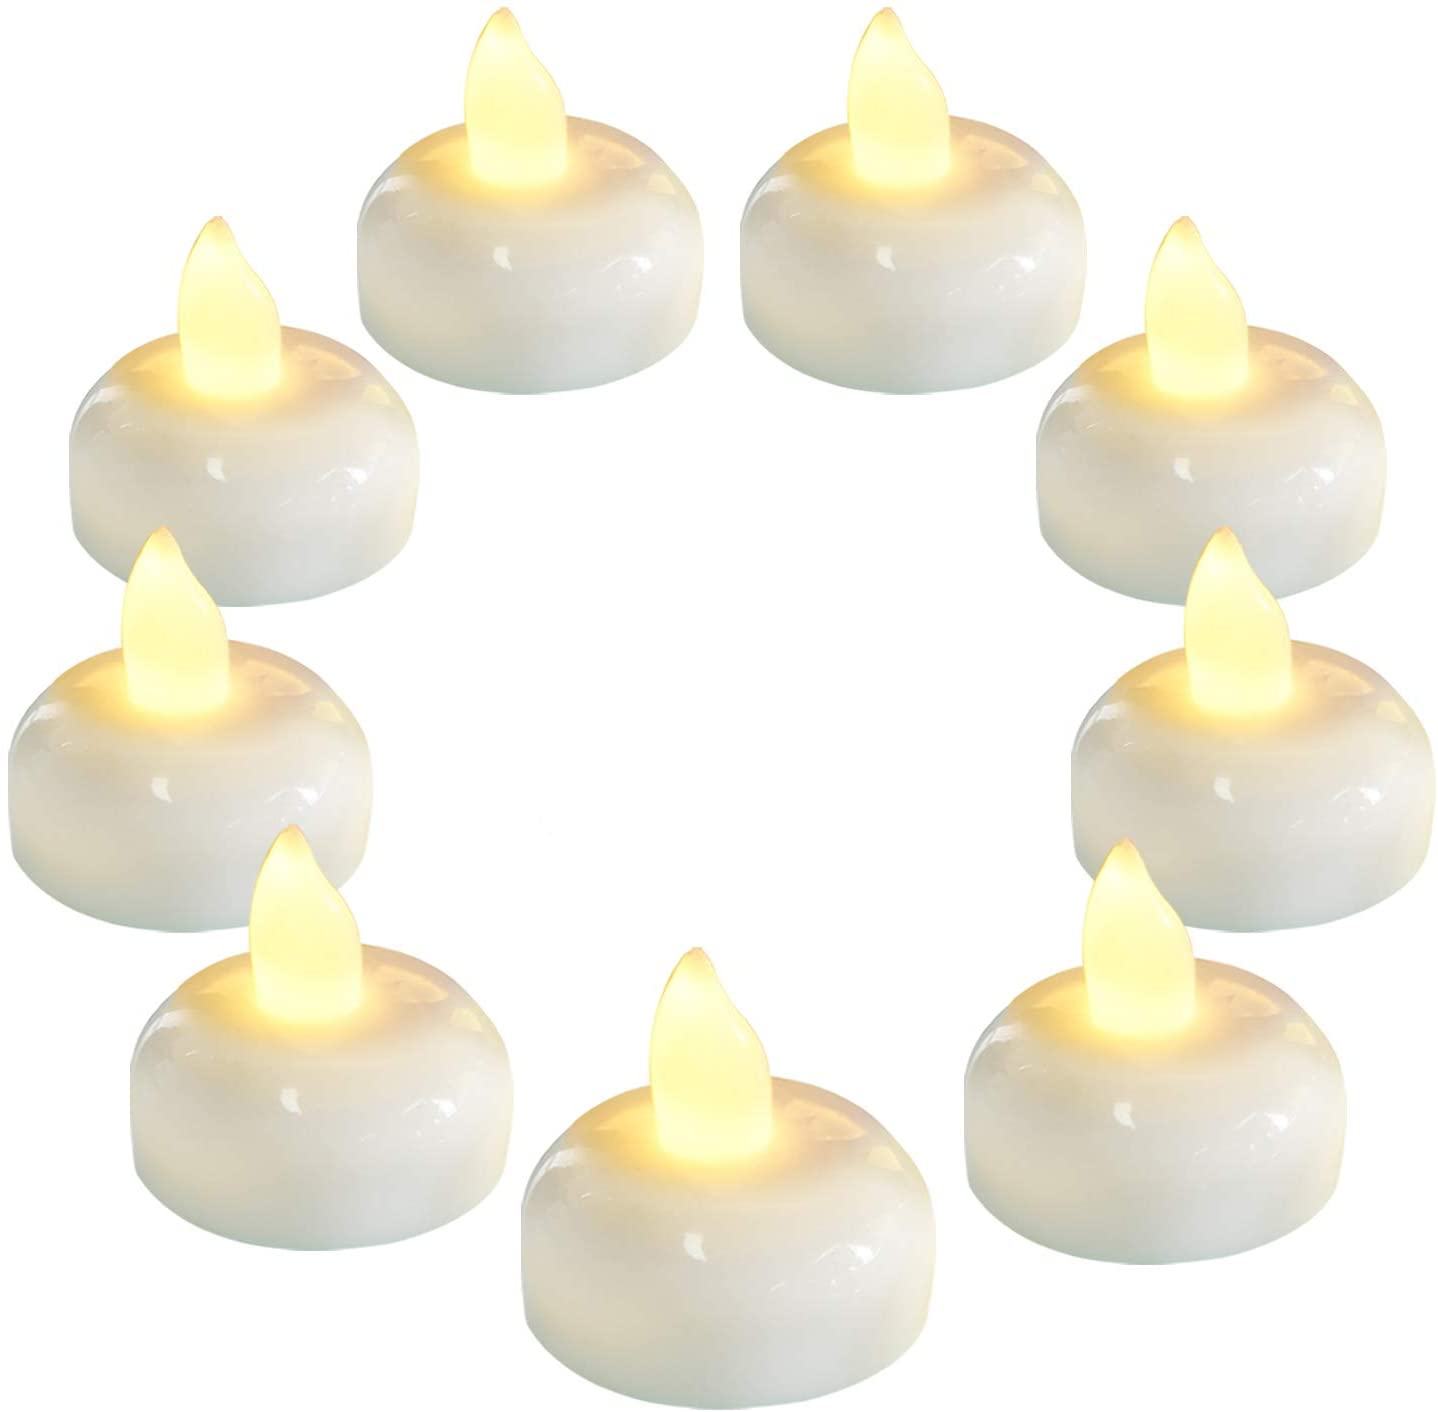 Homemory Animer and price revision 36 Pack Flameless Floating Warm White Flic Candles Led Minneapolis Mall